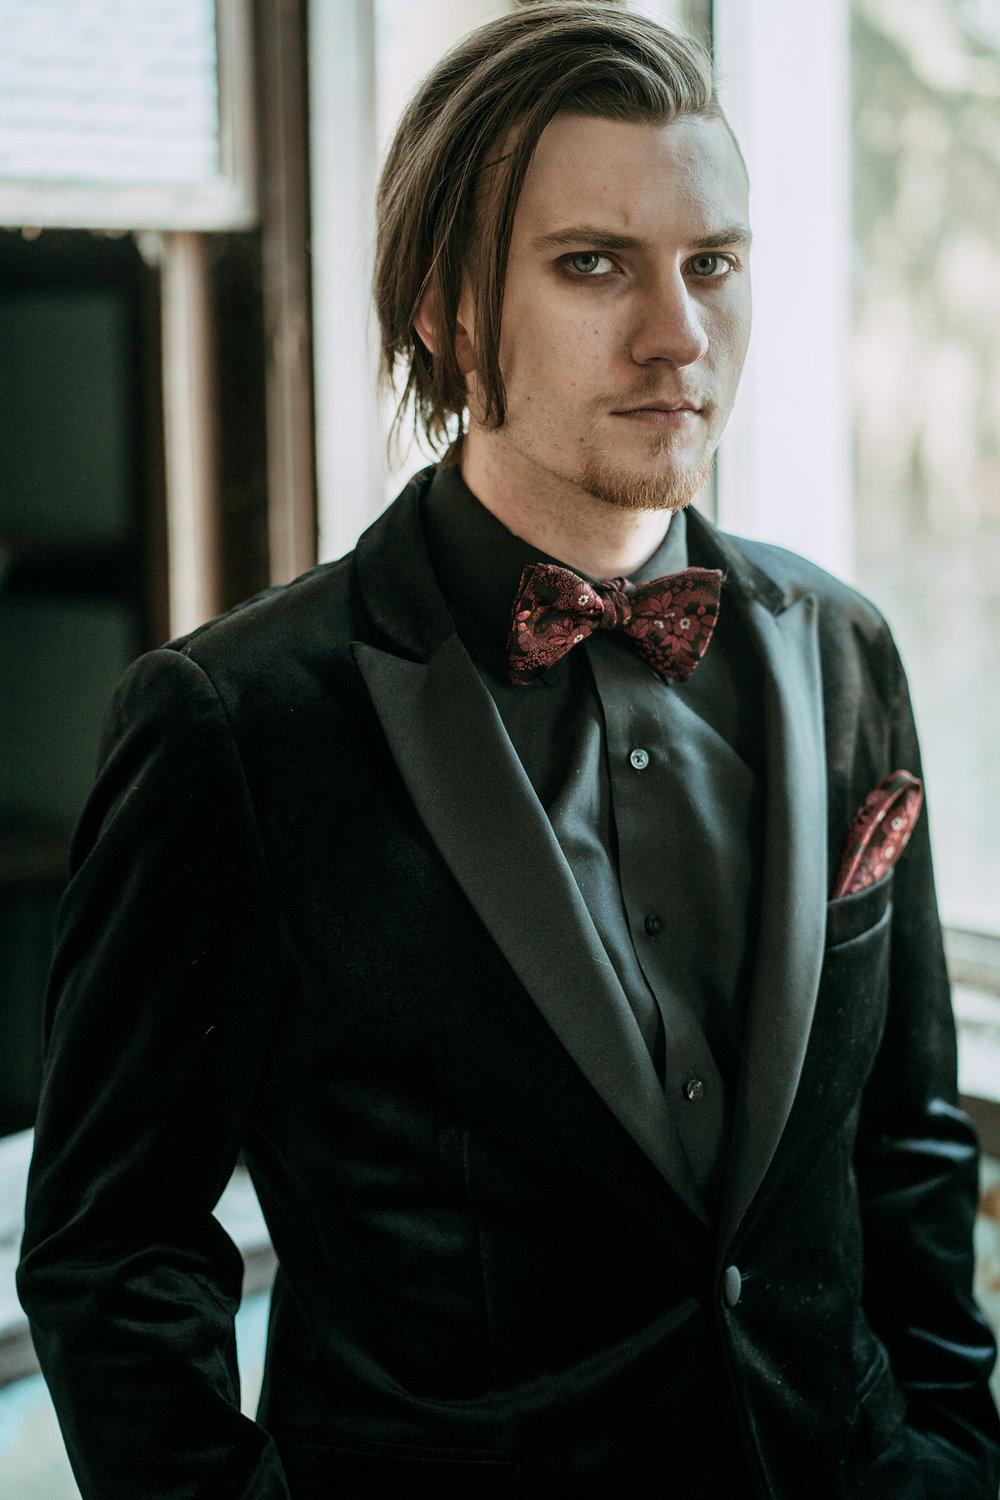 groom-in-skeffintons-black-velvet-jackets-burlington-iowa-gothic-wedding-elopement-raelyn-ramey-photography-200.jpg